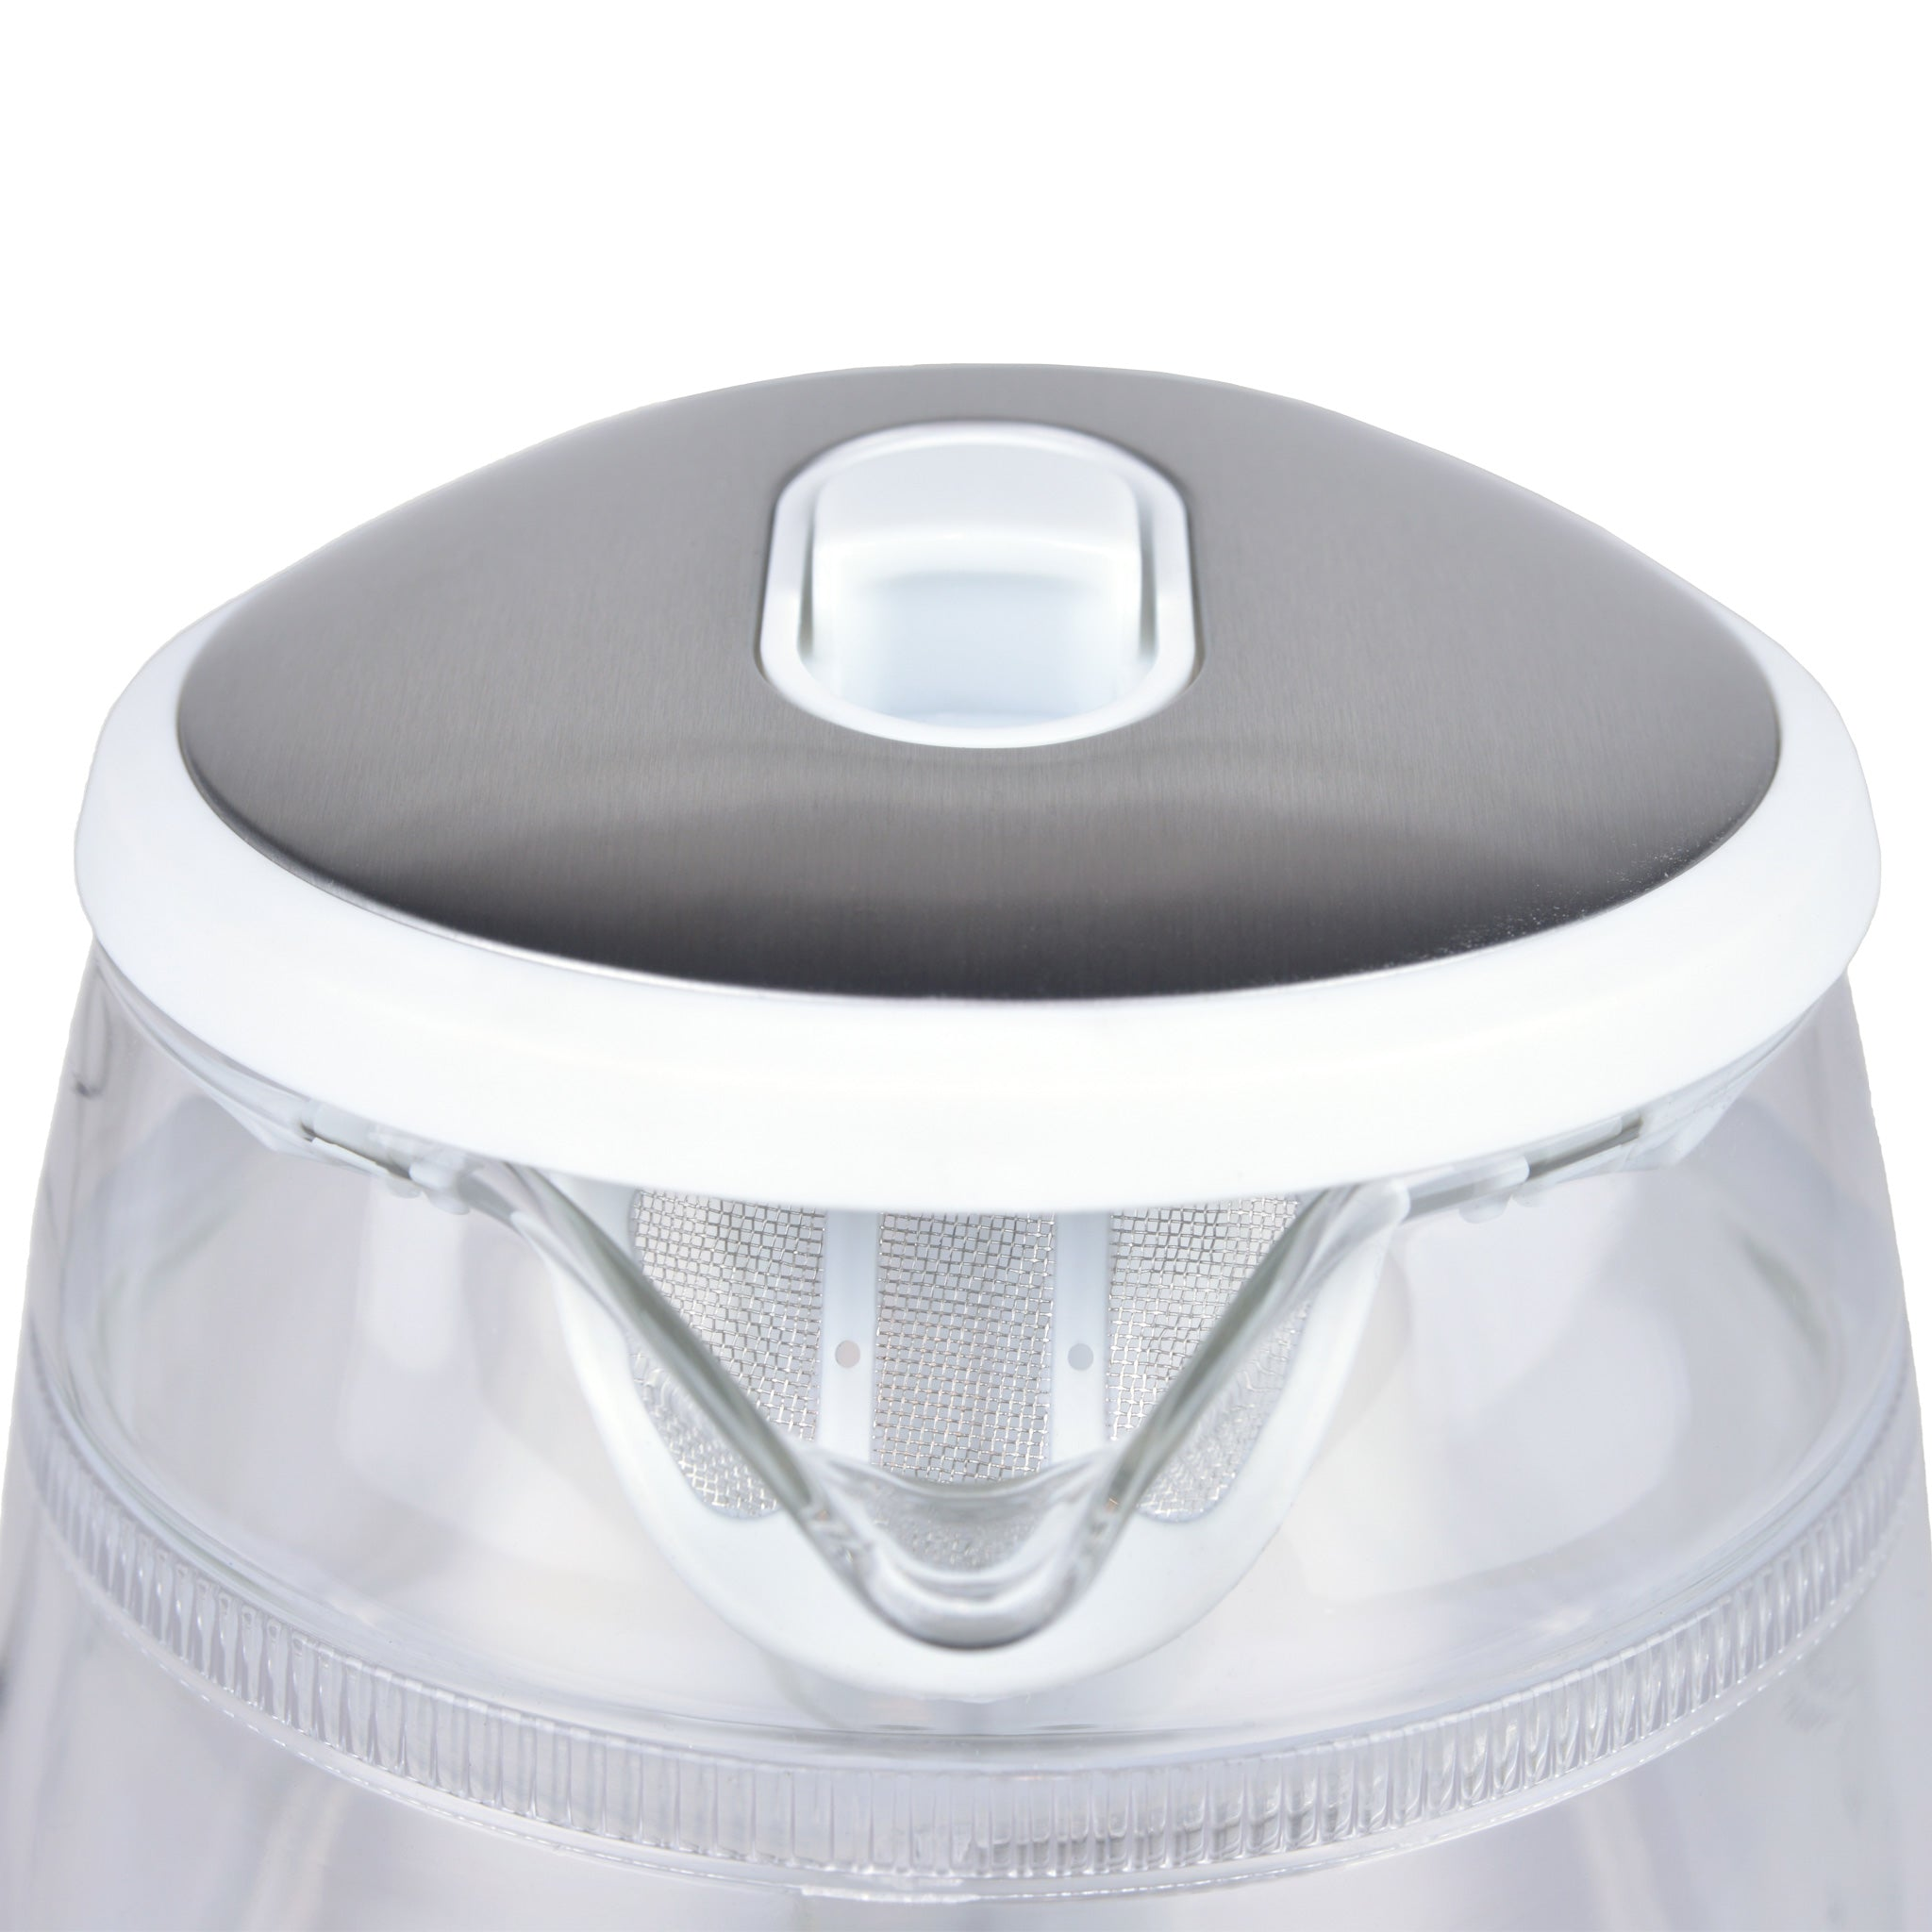 Raw Tea Kettle® Glass Electric Water Kettle GKD-450-B - Filter - Tribest